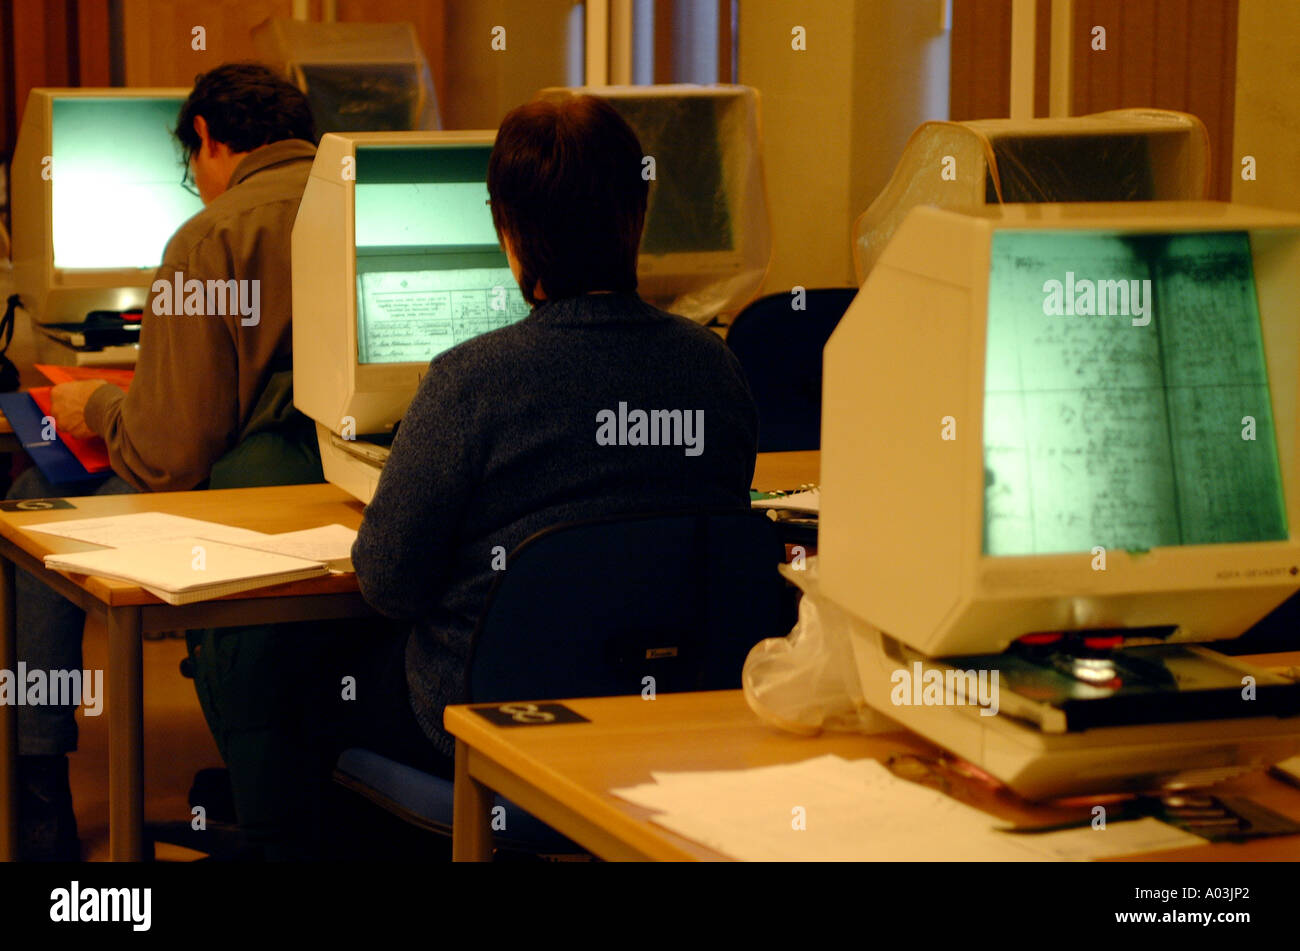 people using microfilms searching device - Stock Image